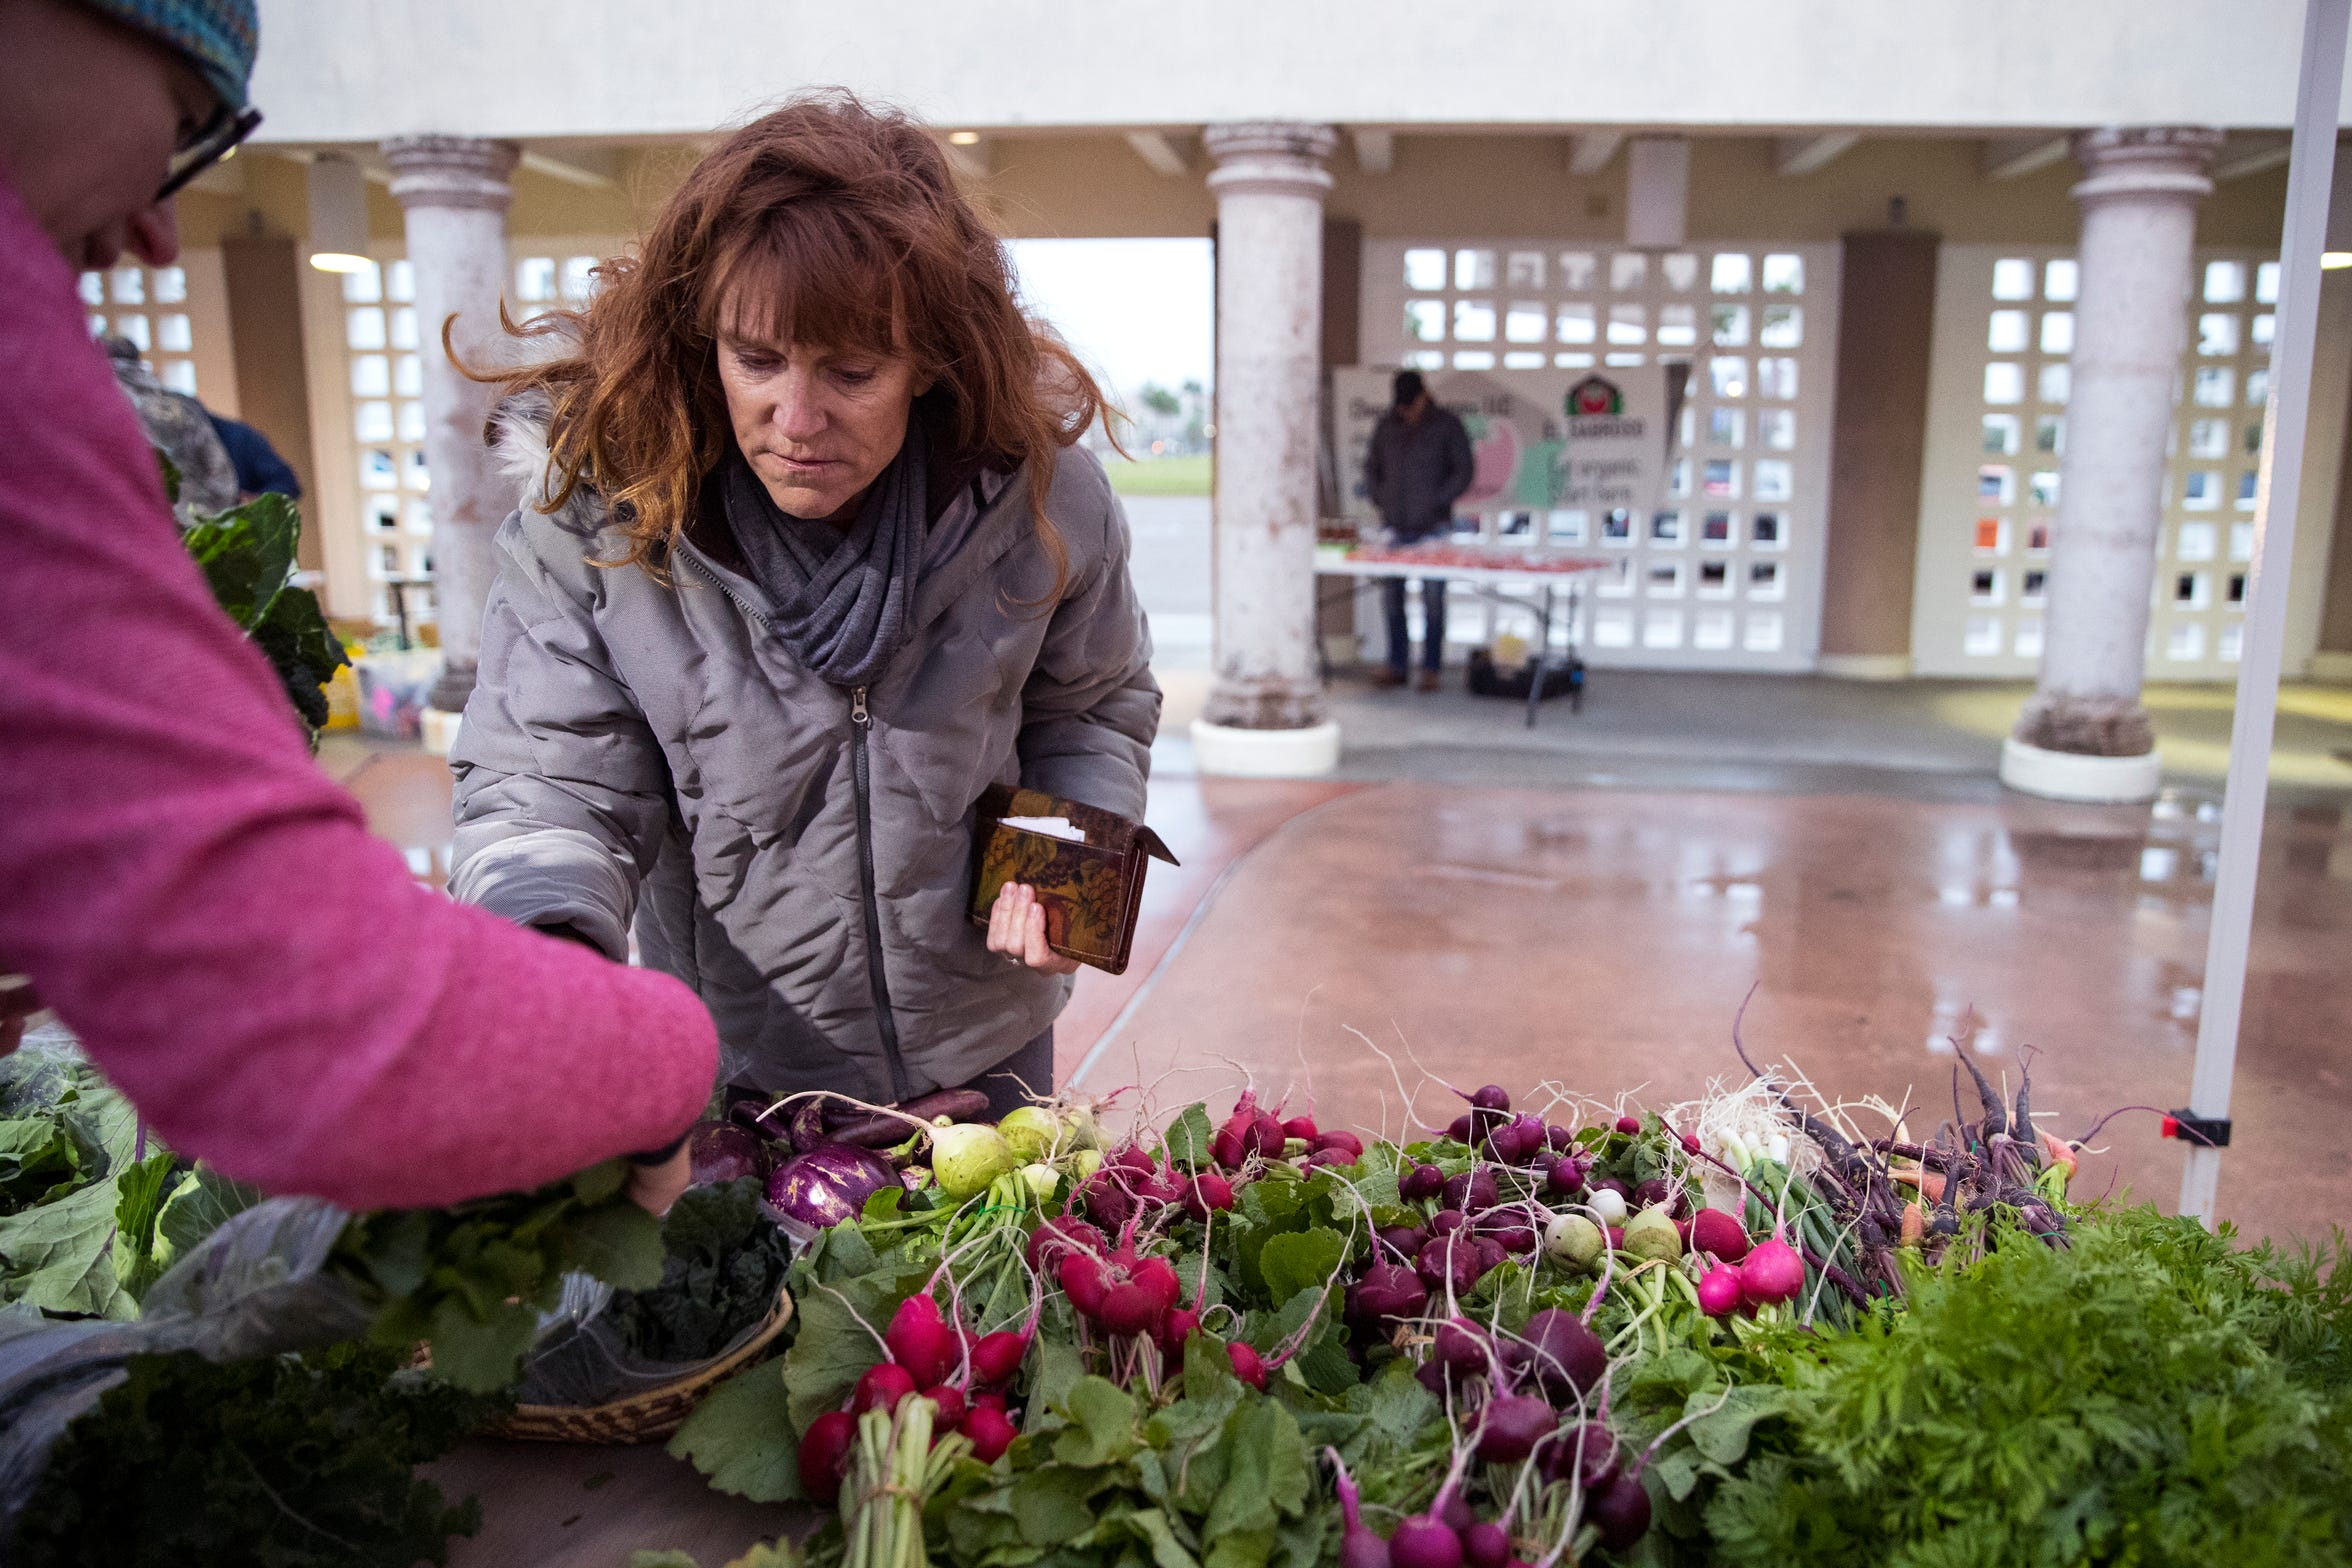 Michelle Kish (left) helps Mariah McQueen as she shops for vegetables at the Corpus Christi Downtown Farmers Market at their first market of the year on January 2, 2019. Farmers markets help create community and producers get to know the consumers that shop with them, said Aislynn Campbell, founder of the market. It also enables the farmer, or business owner to meet new customers and grow their business.